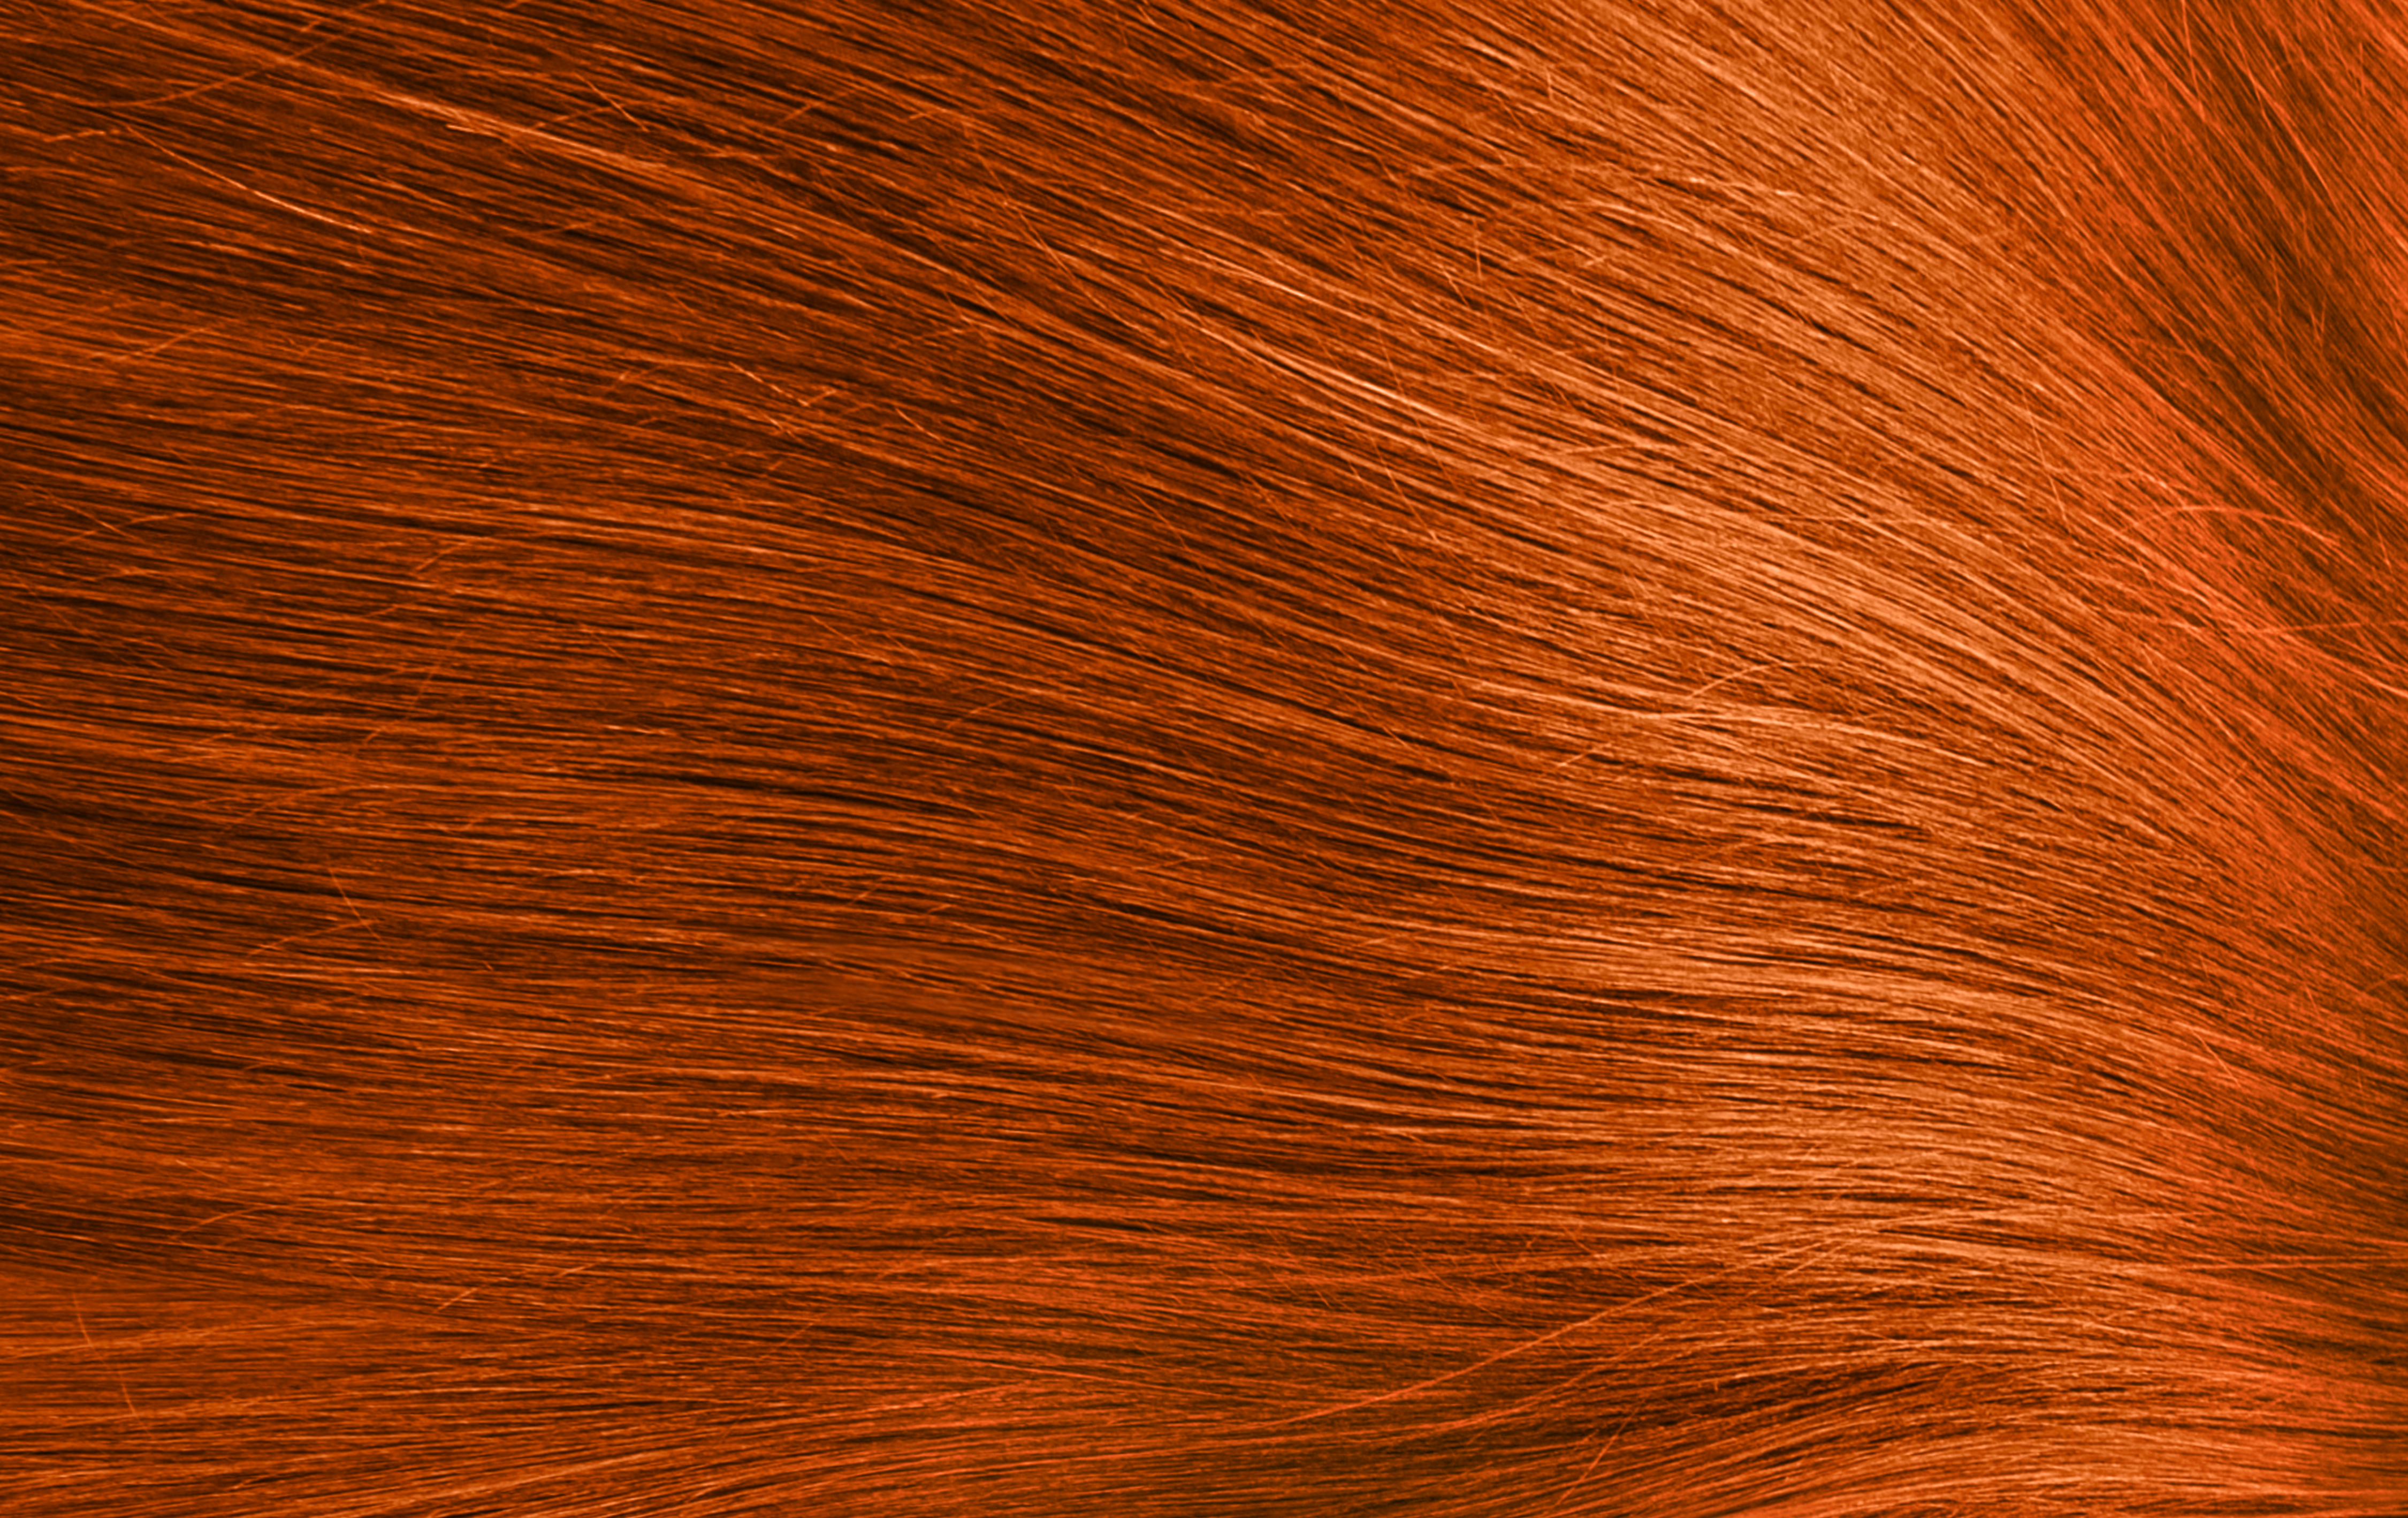 Red Hair Texture.